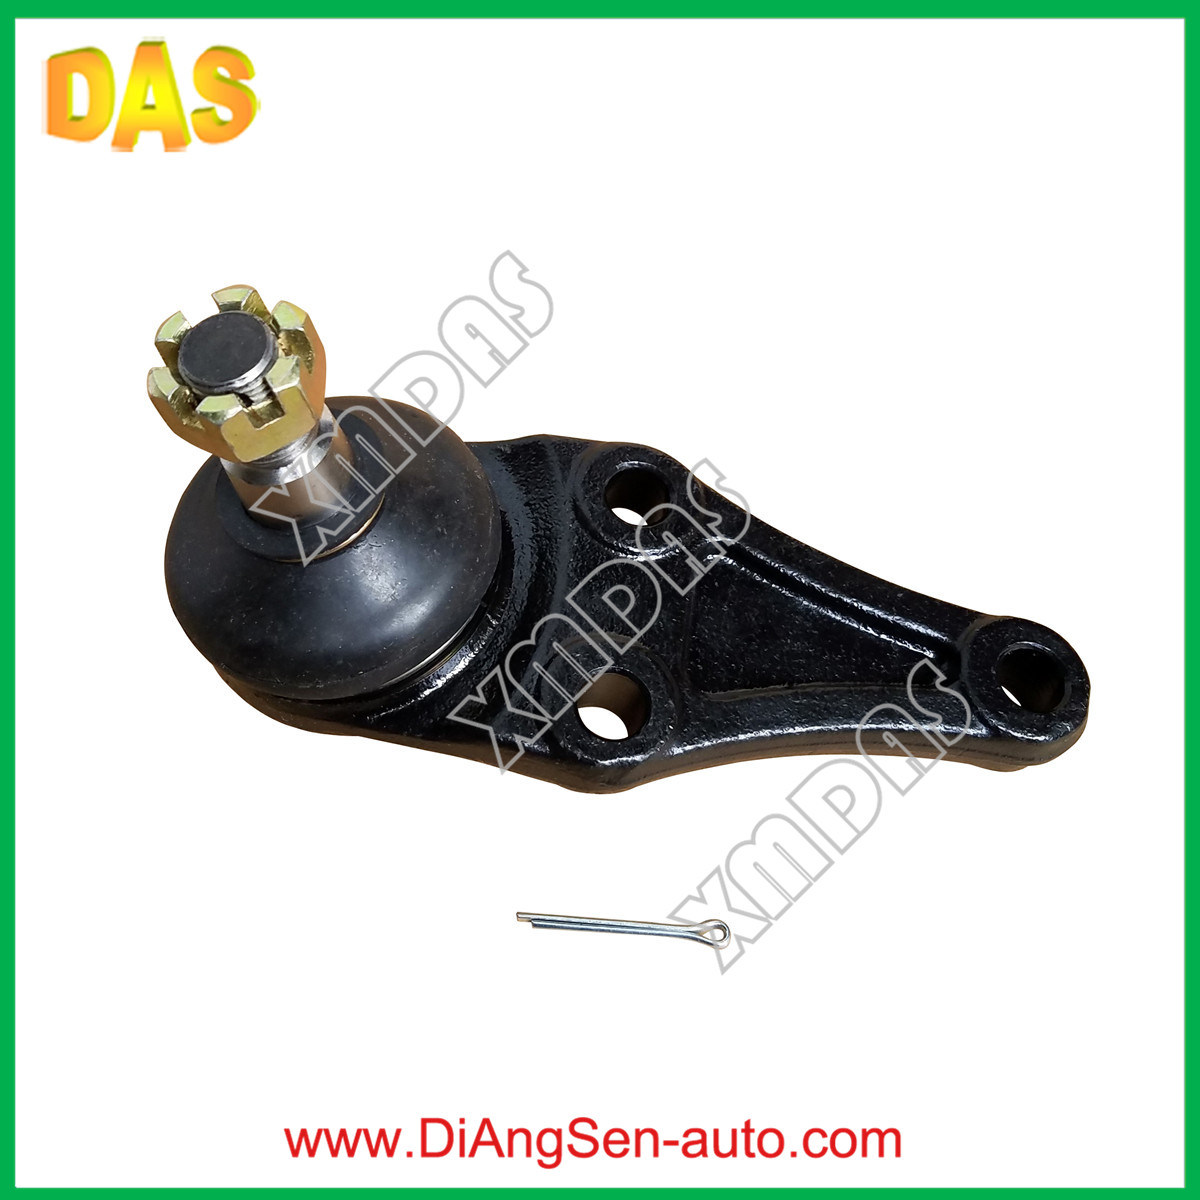 Japanese Car Spare Parts Suspension Ball Joint for Mitsubishi Pajero MR496799